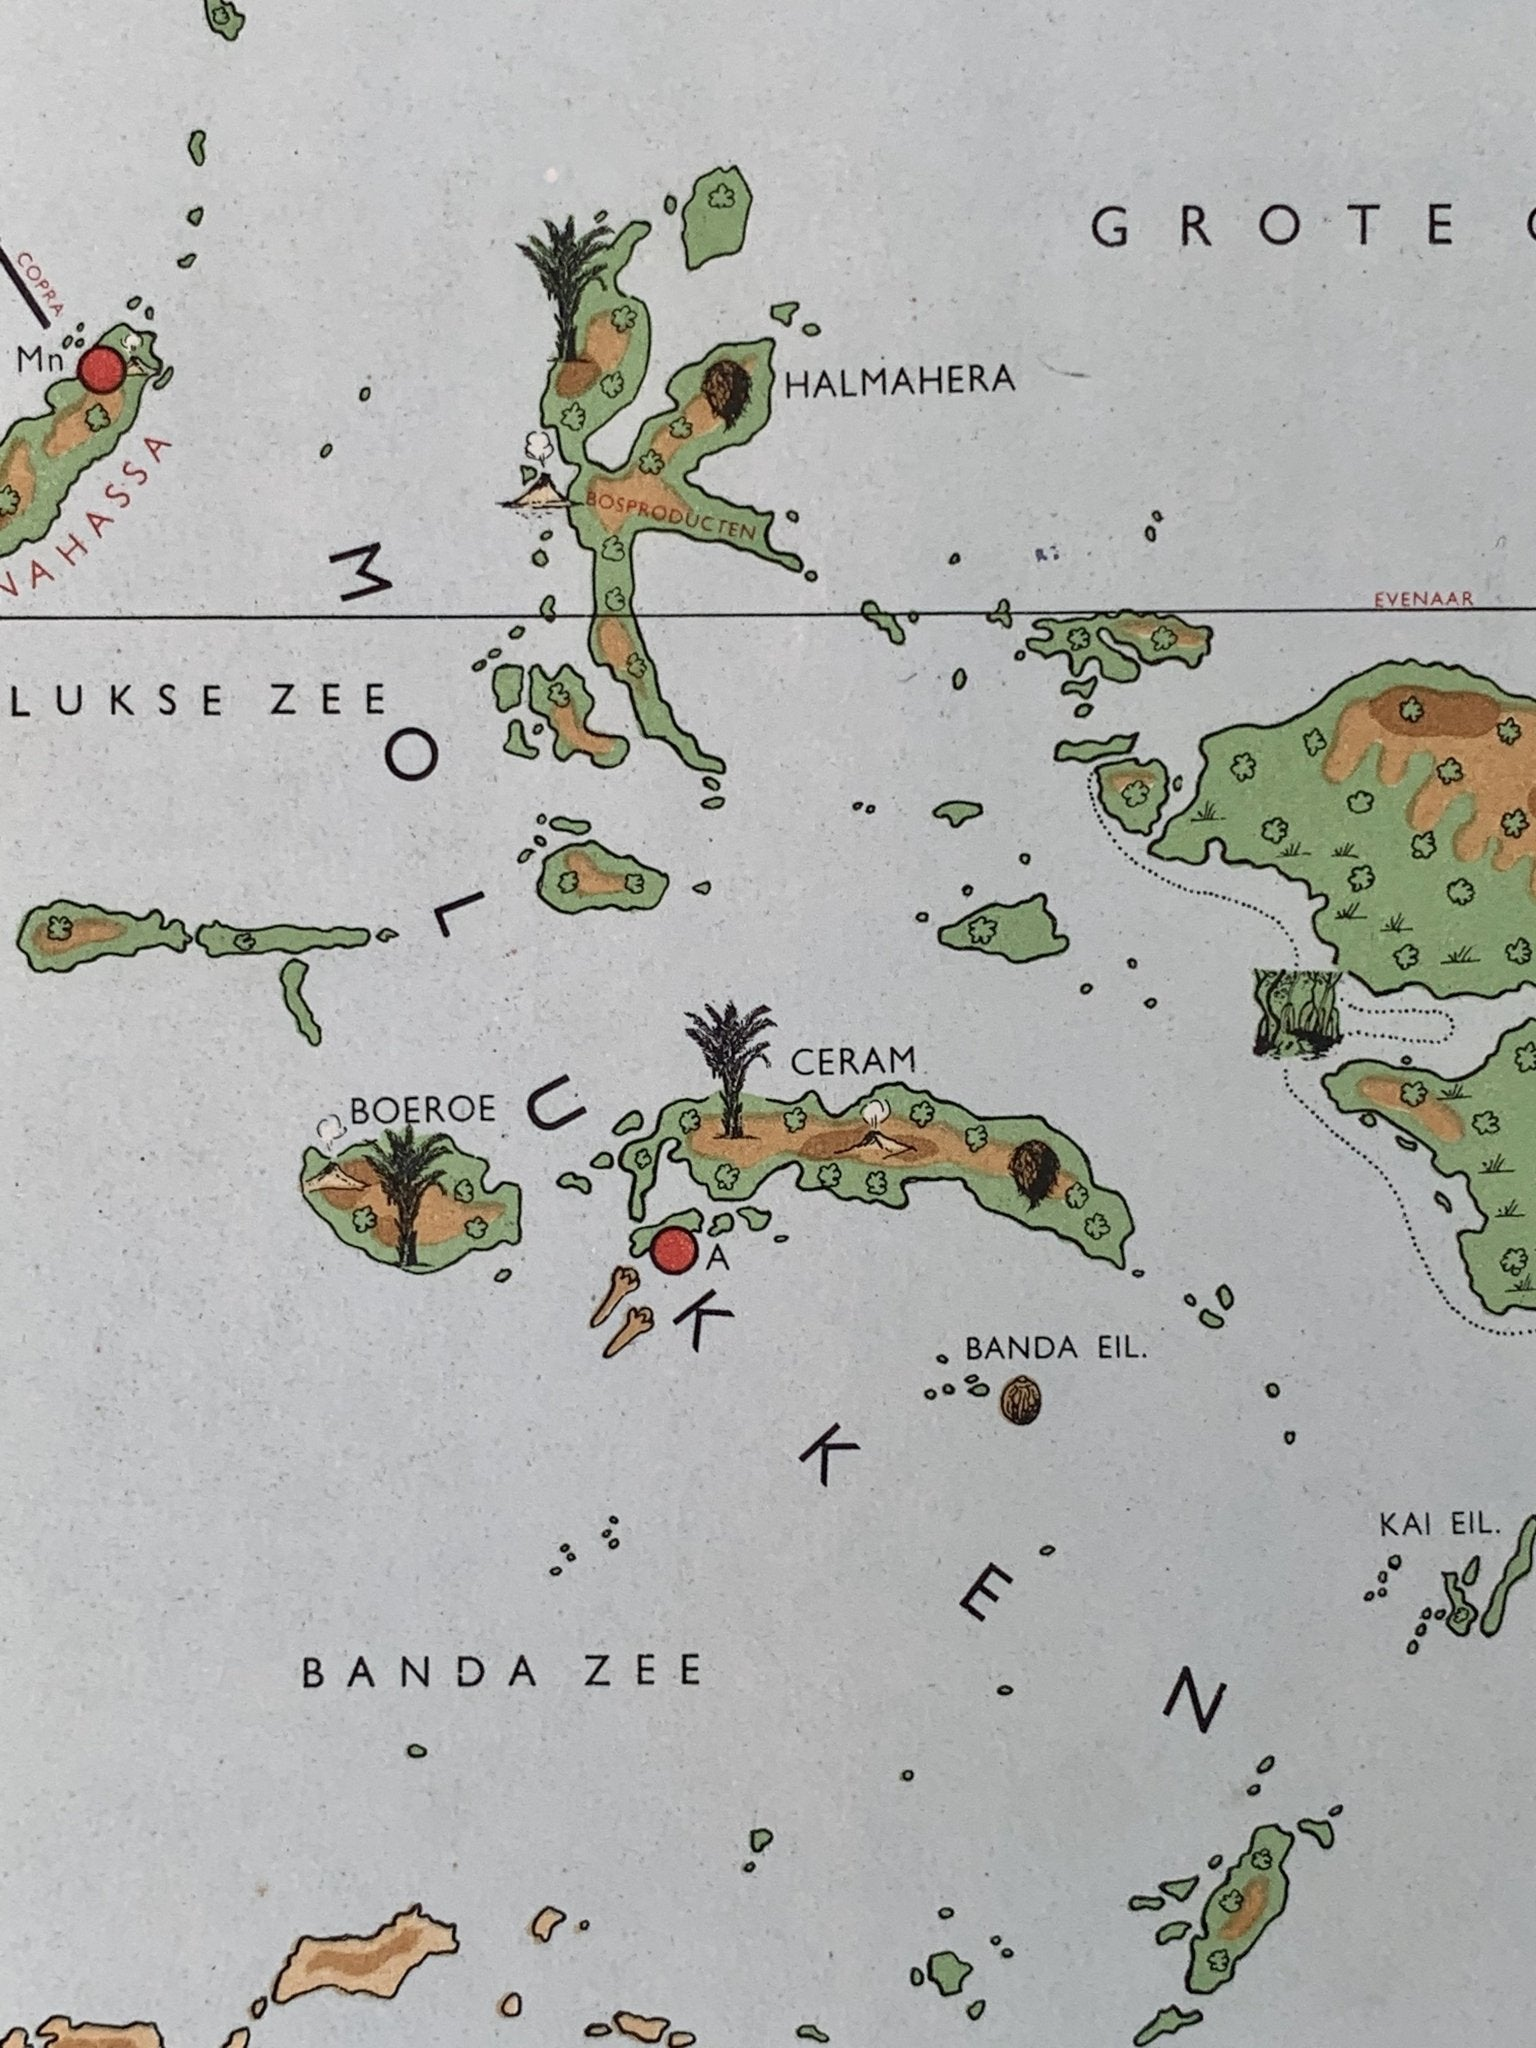 Oost Indonesië - Molukken - Nieuw-Guinea - 1951 - World of Maps & Travel